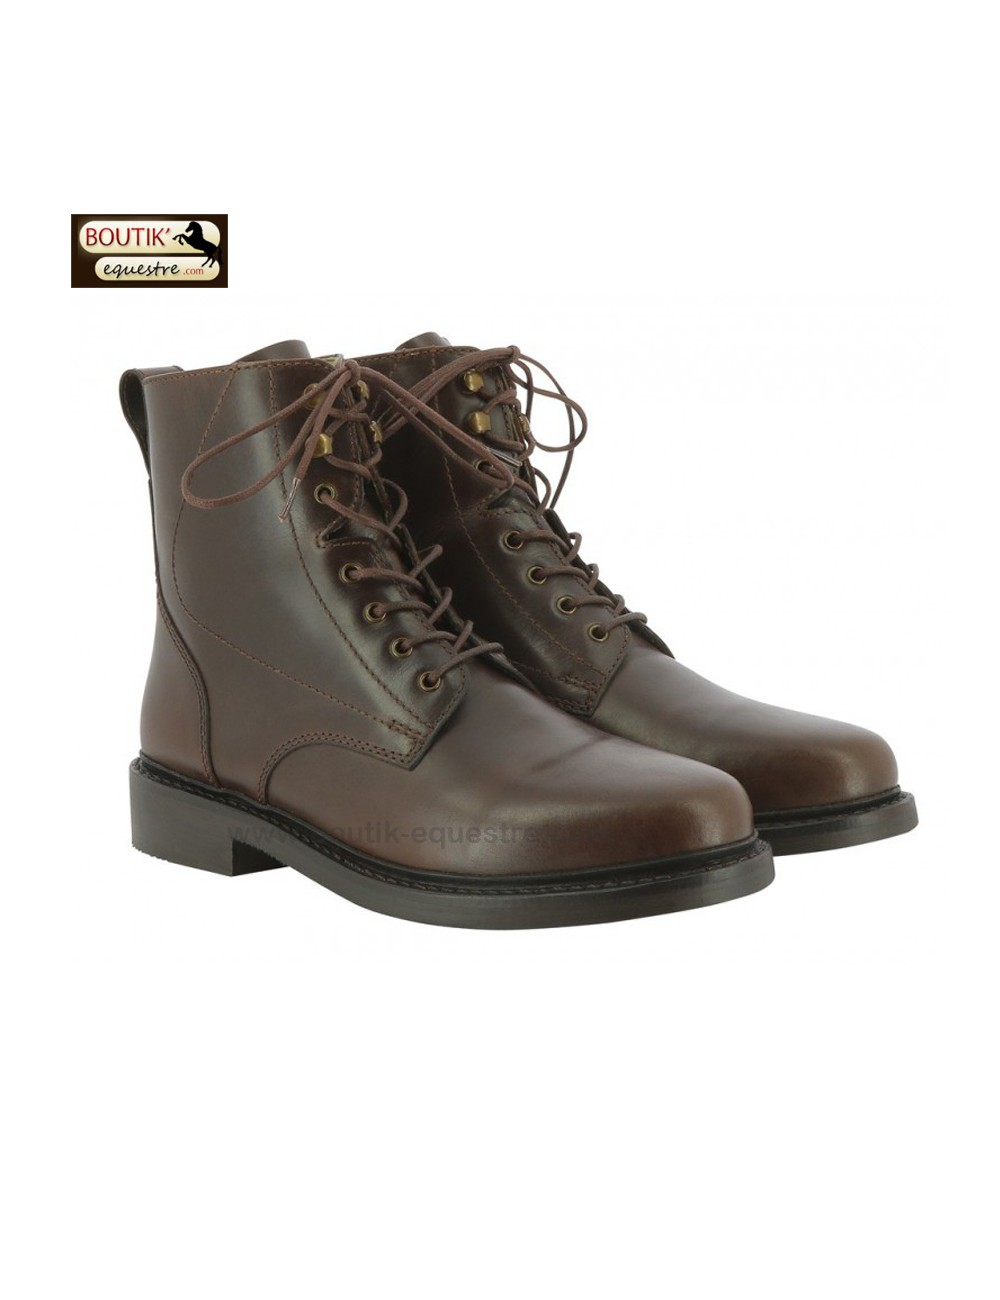 Boots PRO SERIES Cyclone